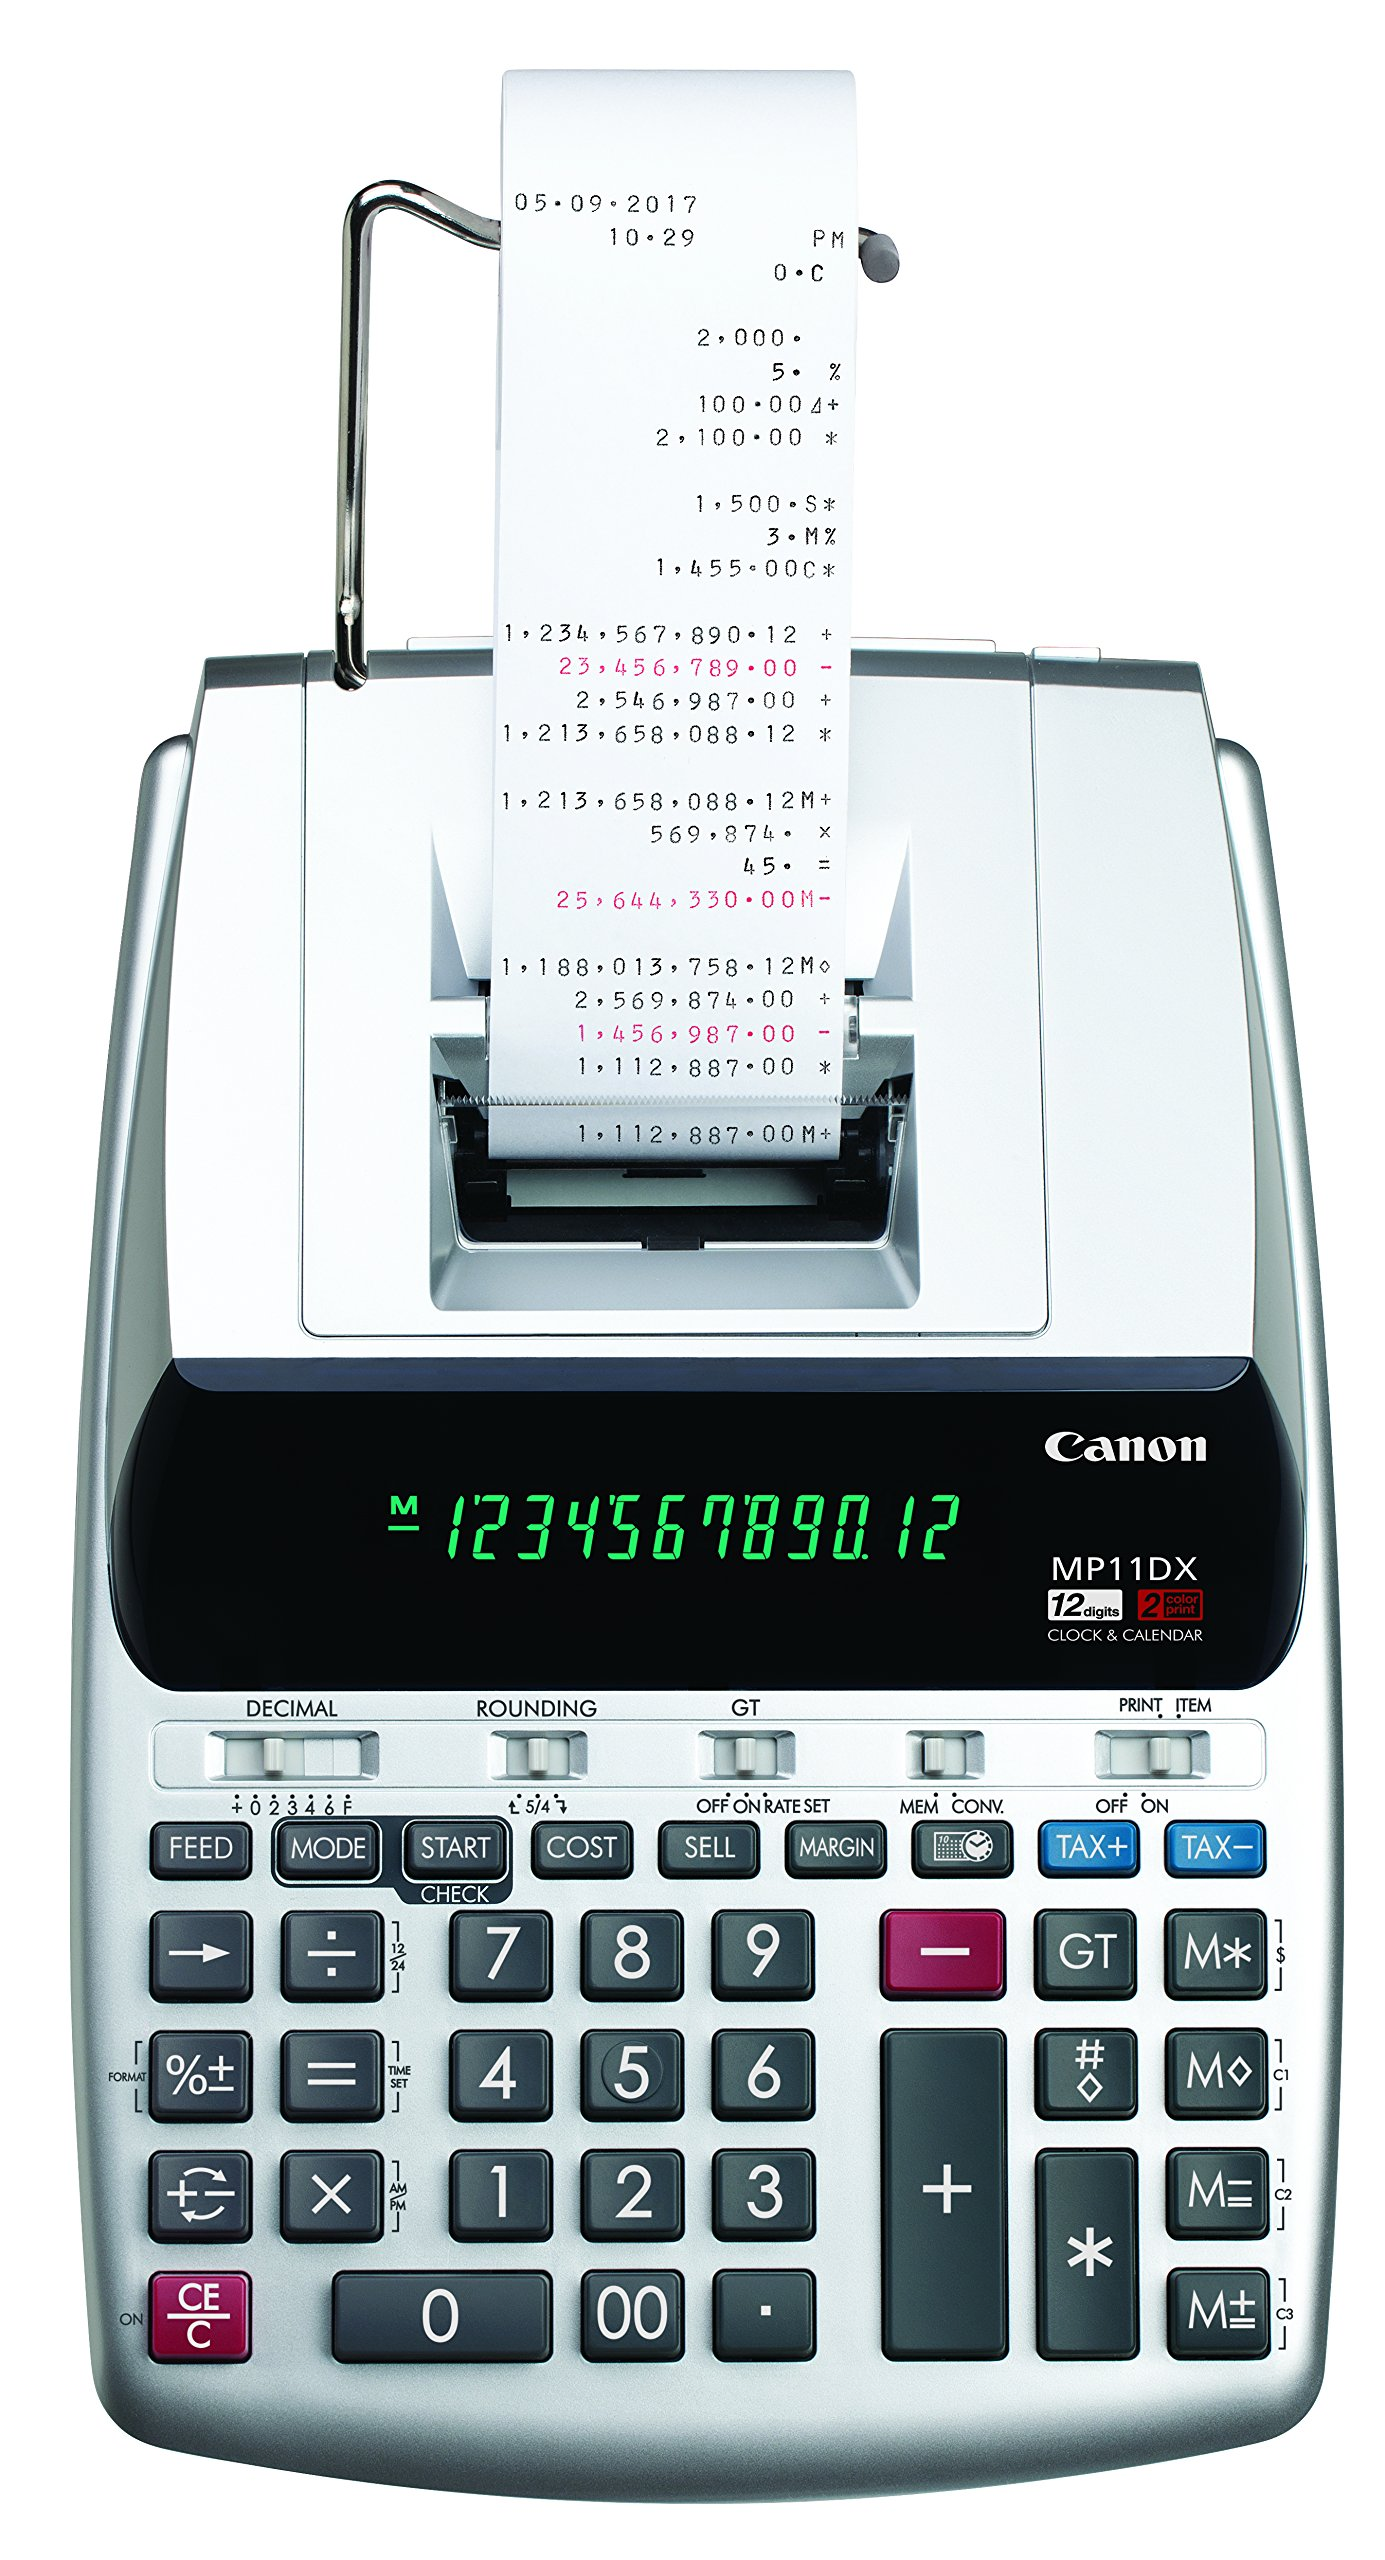 Canon Office Products 2198C001 Canon MP11DX-2 Desktop Printing Calculator with Currency Conversion, Clock and Calendar by Canon